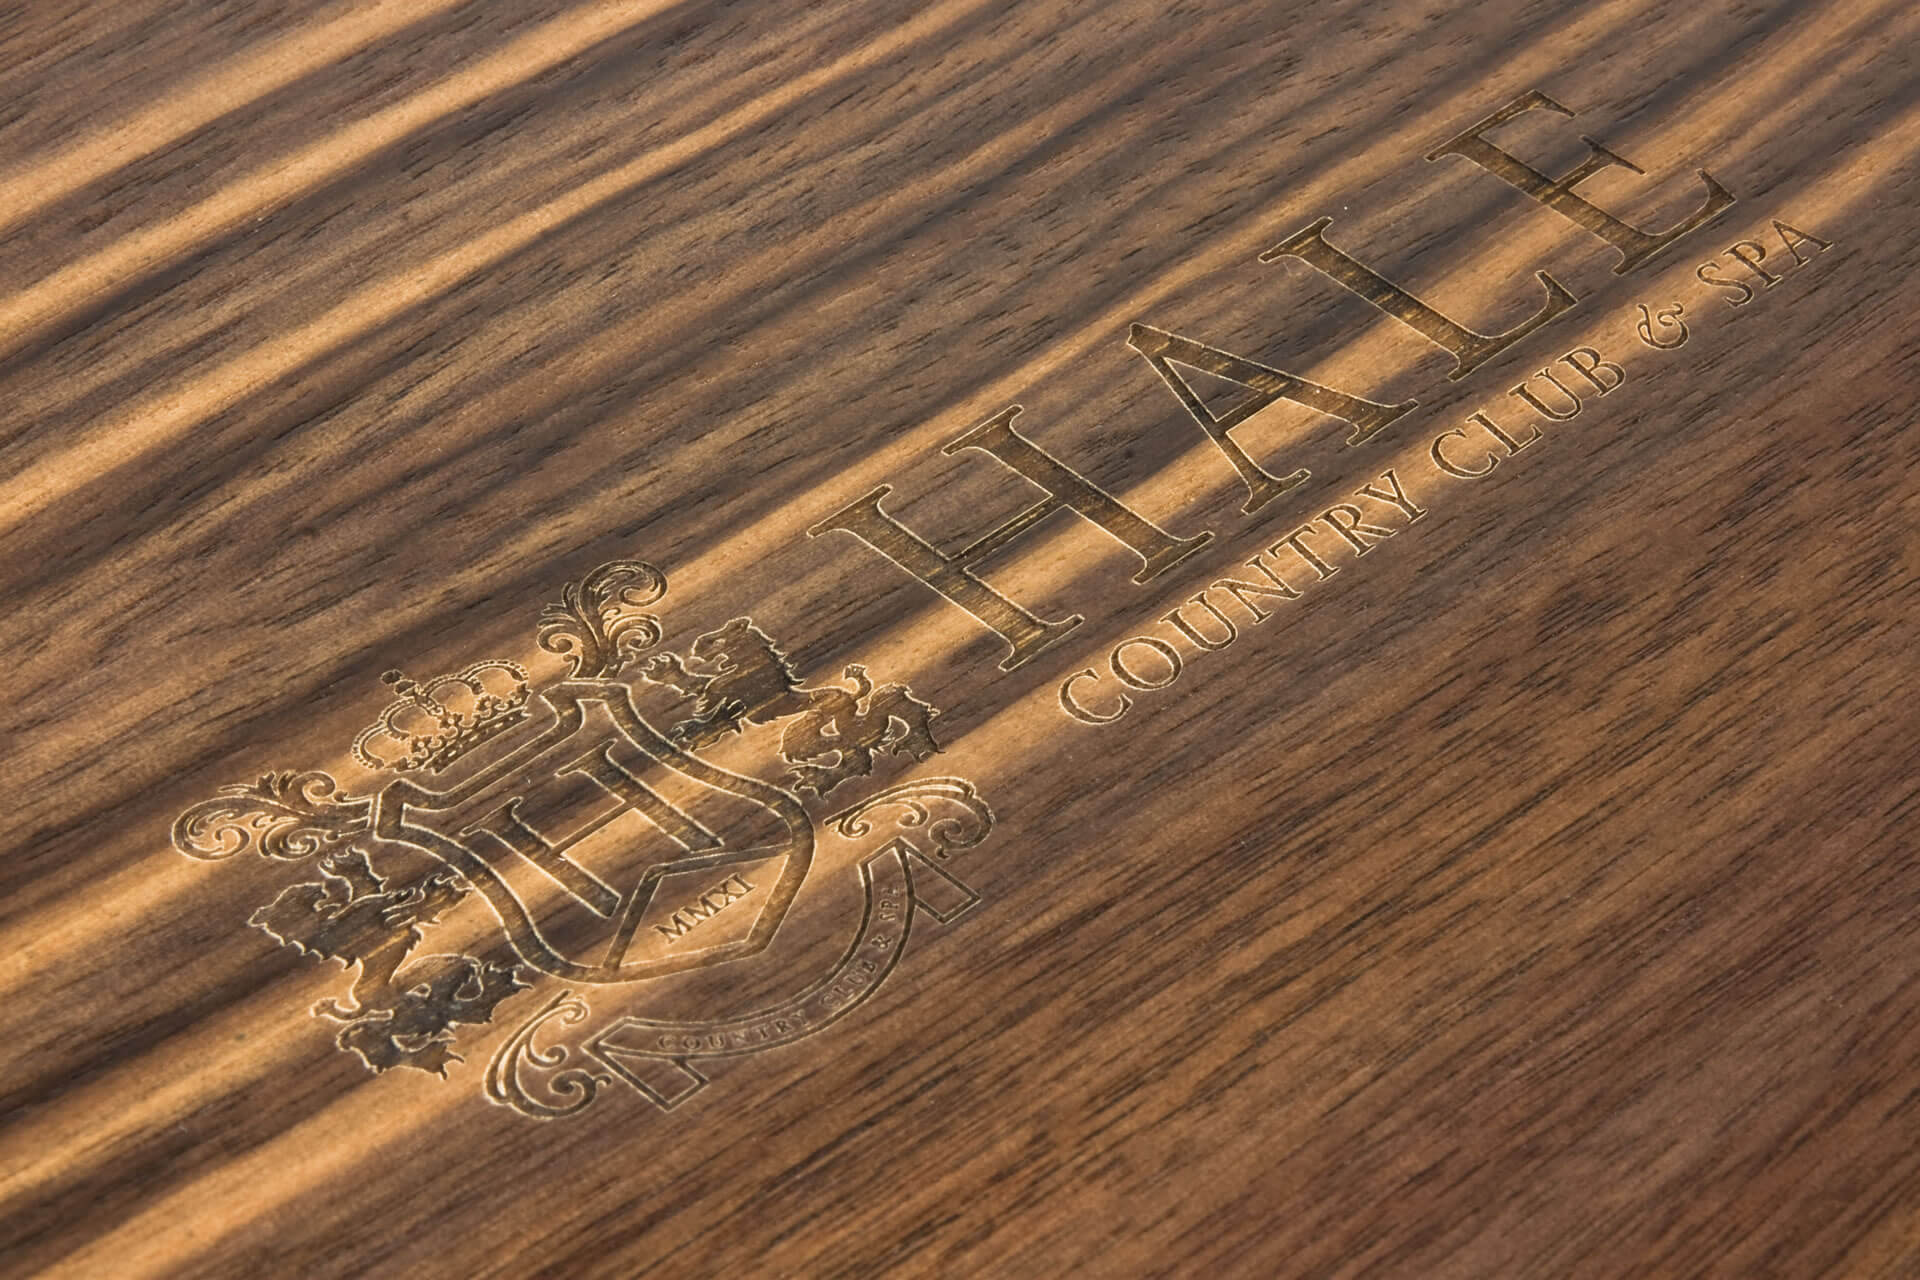 hale bespoke wooden folding lid presentation membership box laser engraving detail